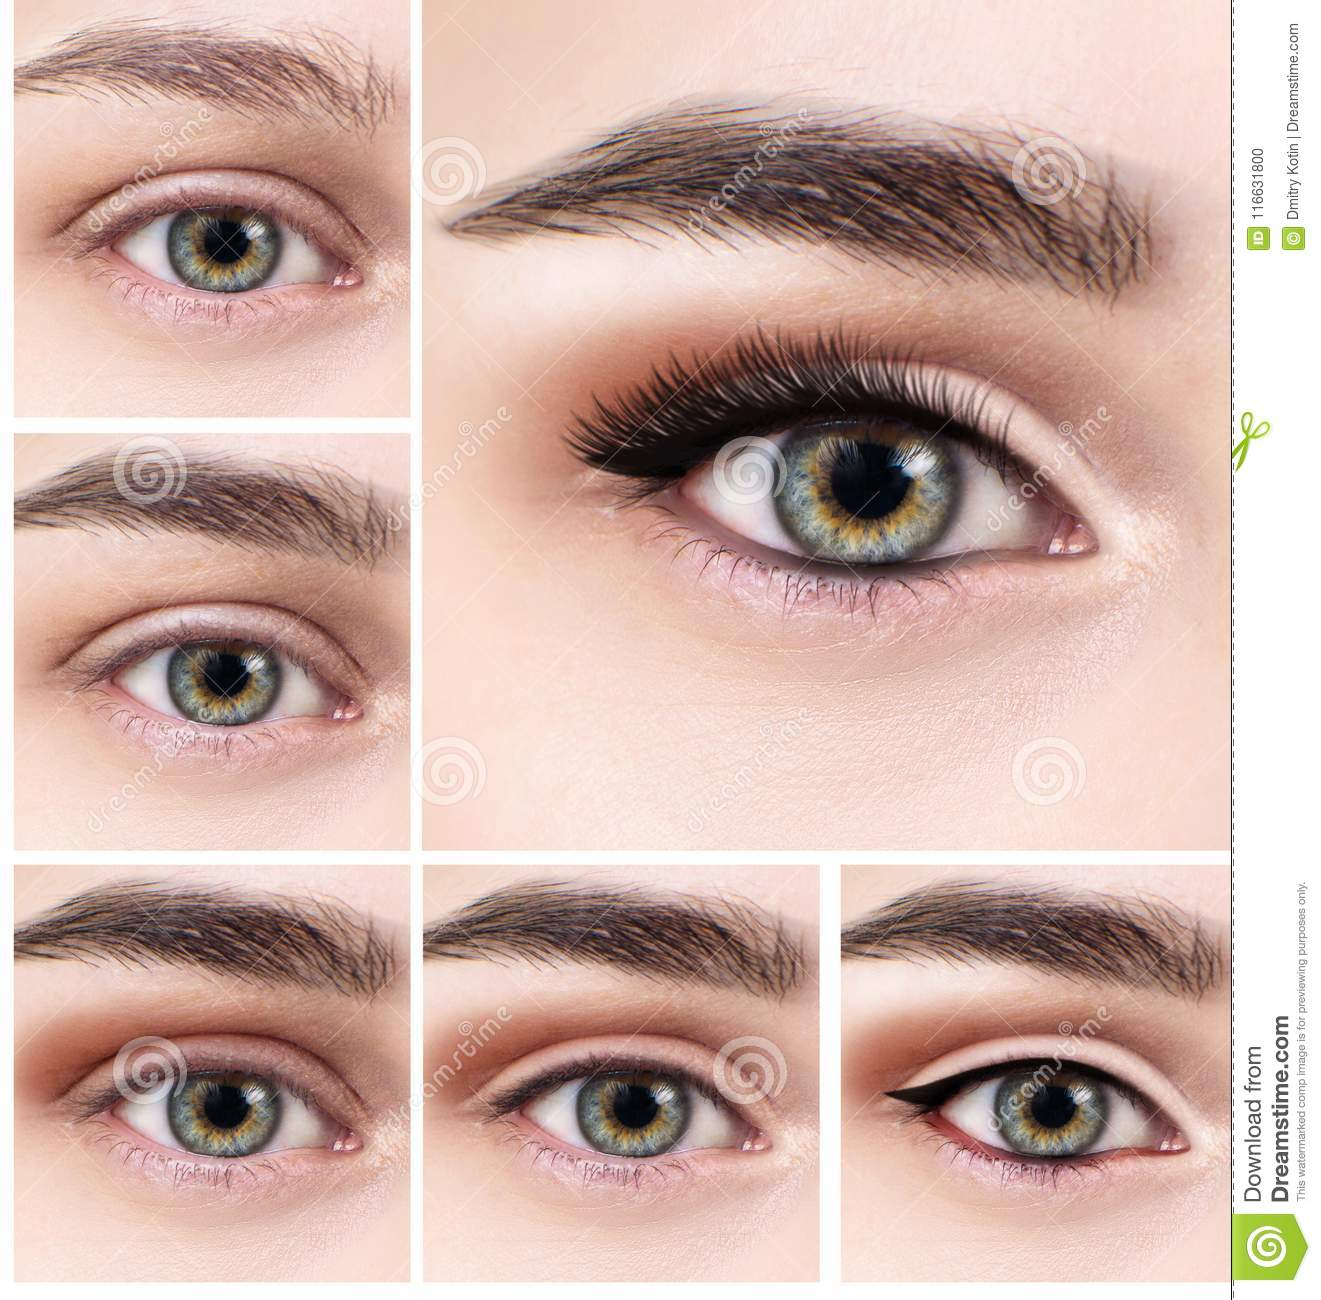 Collage Of Female Eye With Makeup Steps Stock Photo